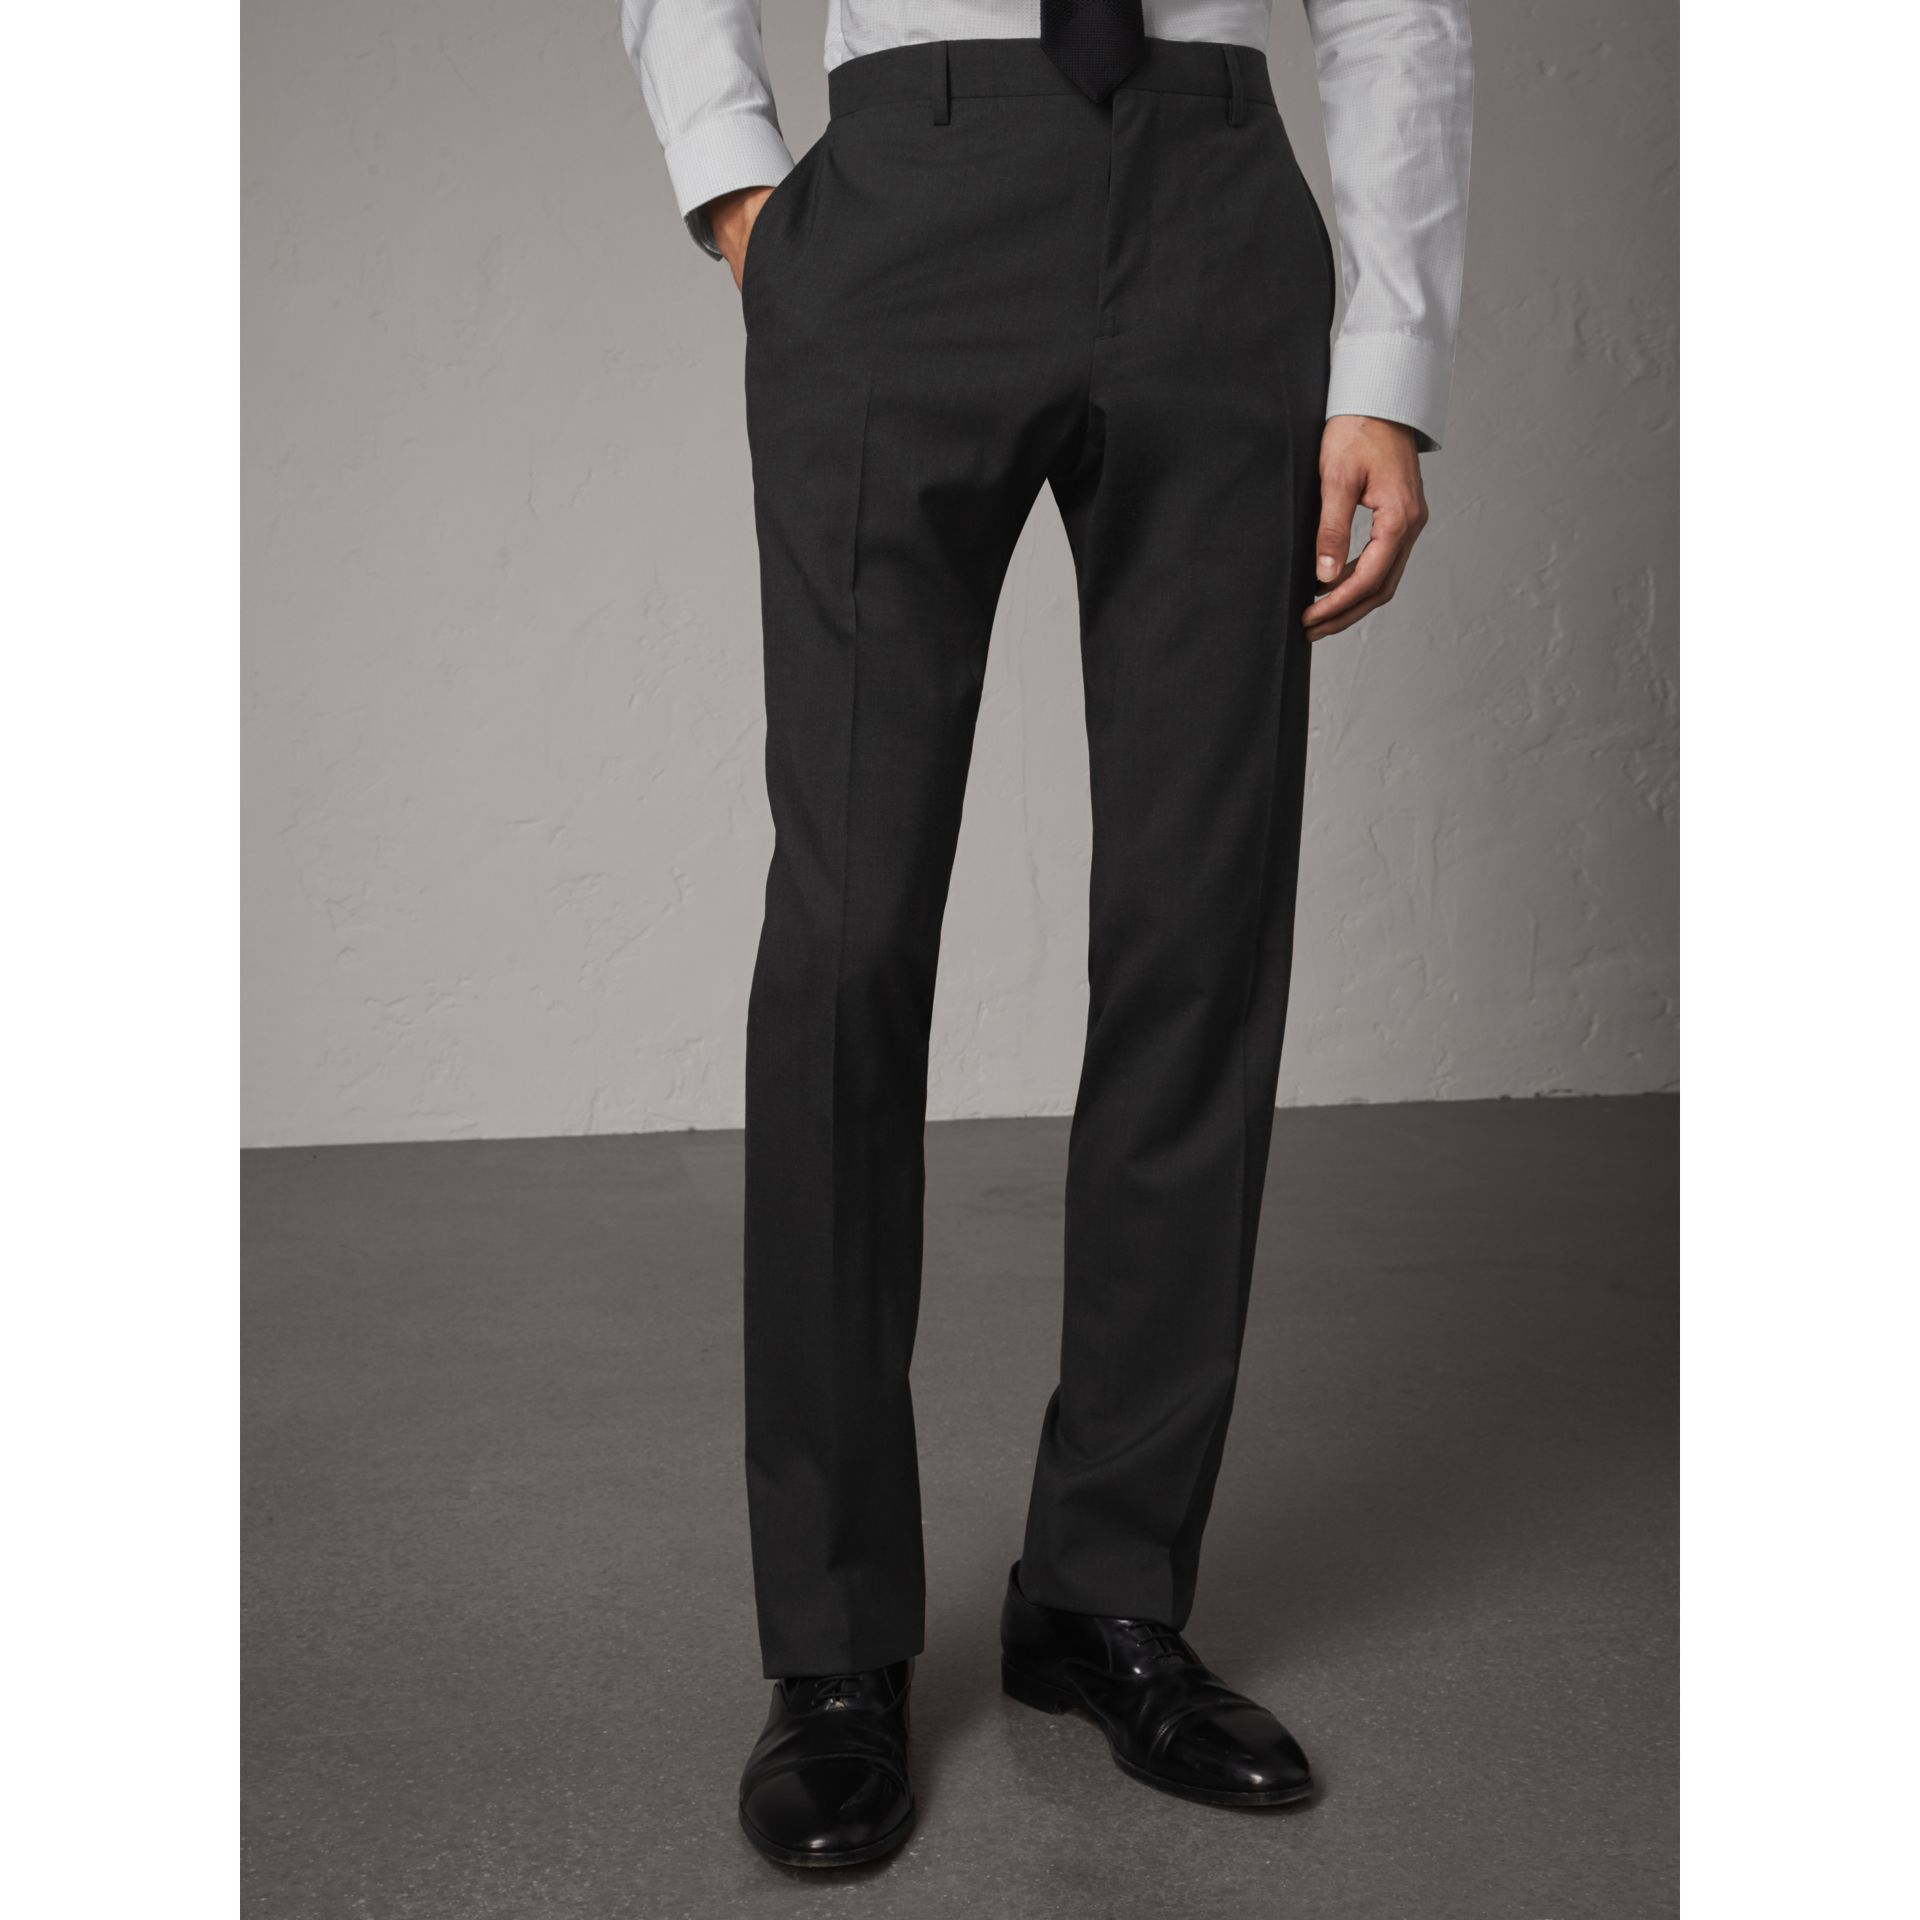 Pantalon de coupe moderne en laine (Anthracite) - Homme | Burberry - photo de la galerie 5